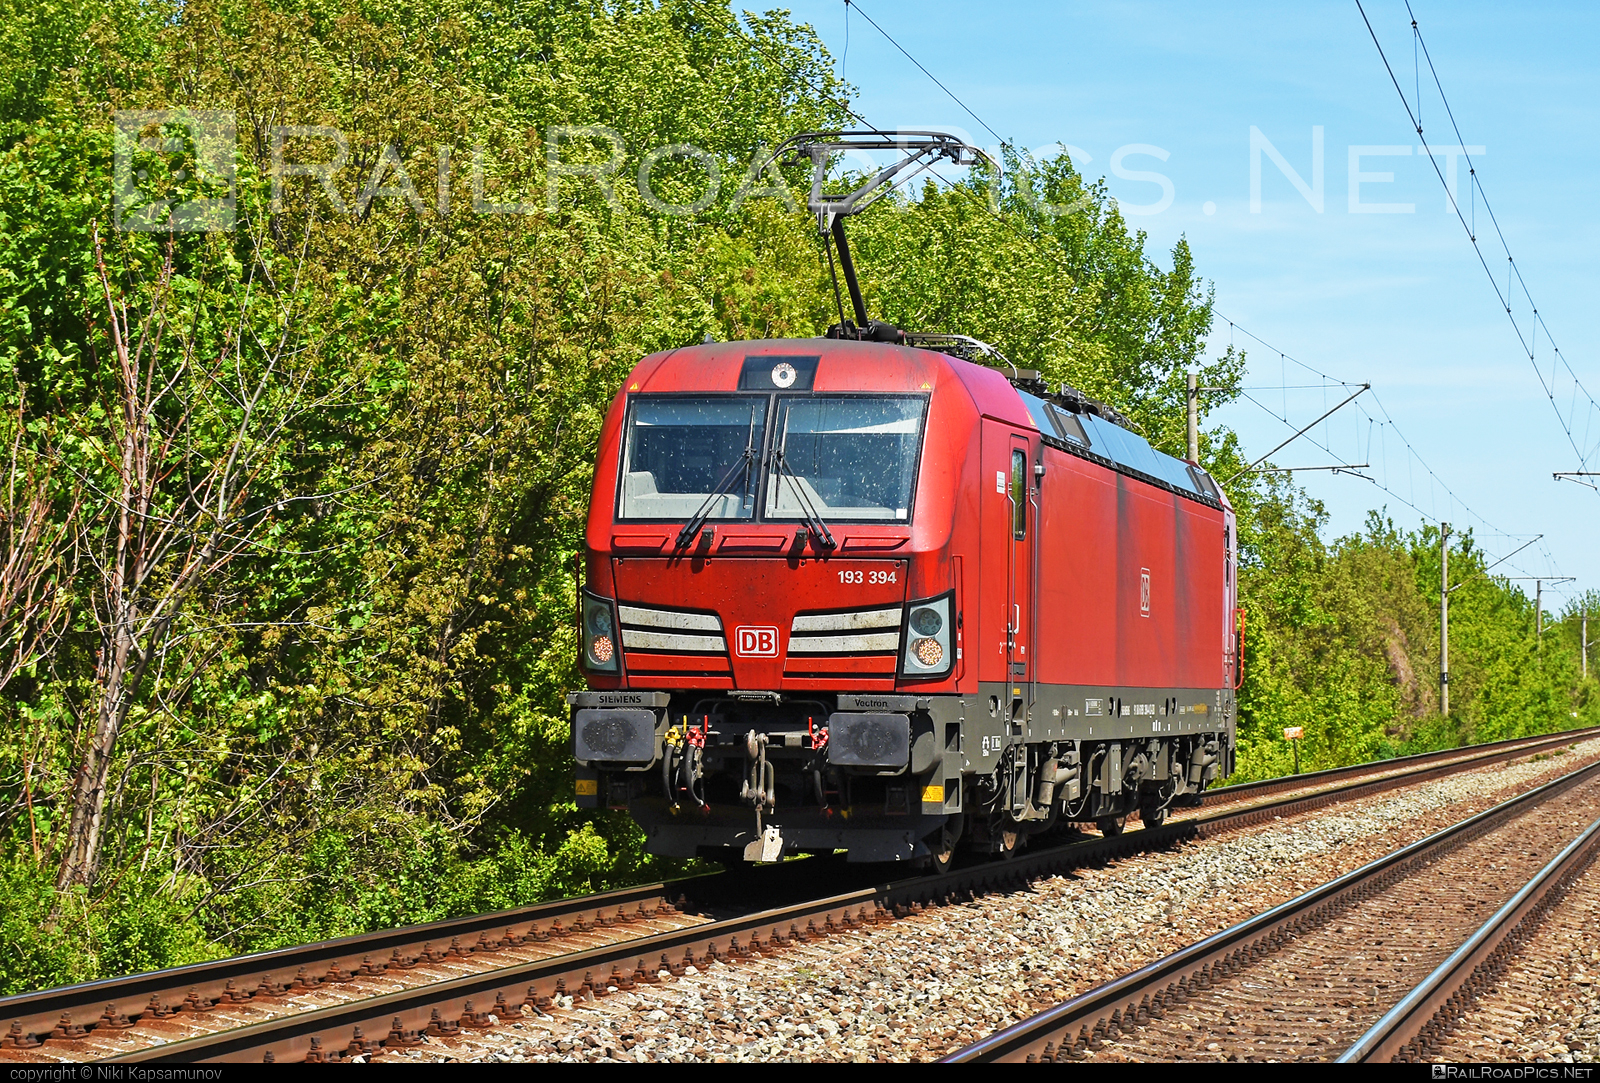 Siemens Vectron MS - 193 394 operated by DB Cargo AG #db #dbcargo #dbcargoag #deutschebahn #siemens #siemensvectron #siemensvectronms #vectron #vectronms